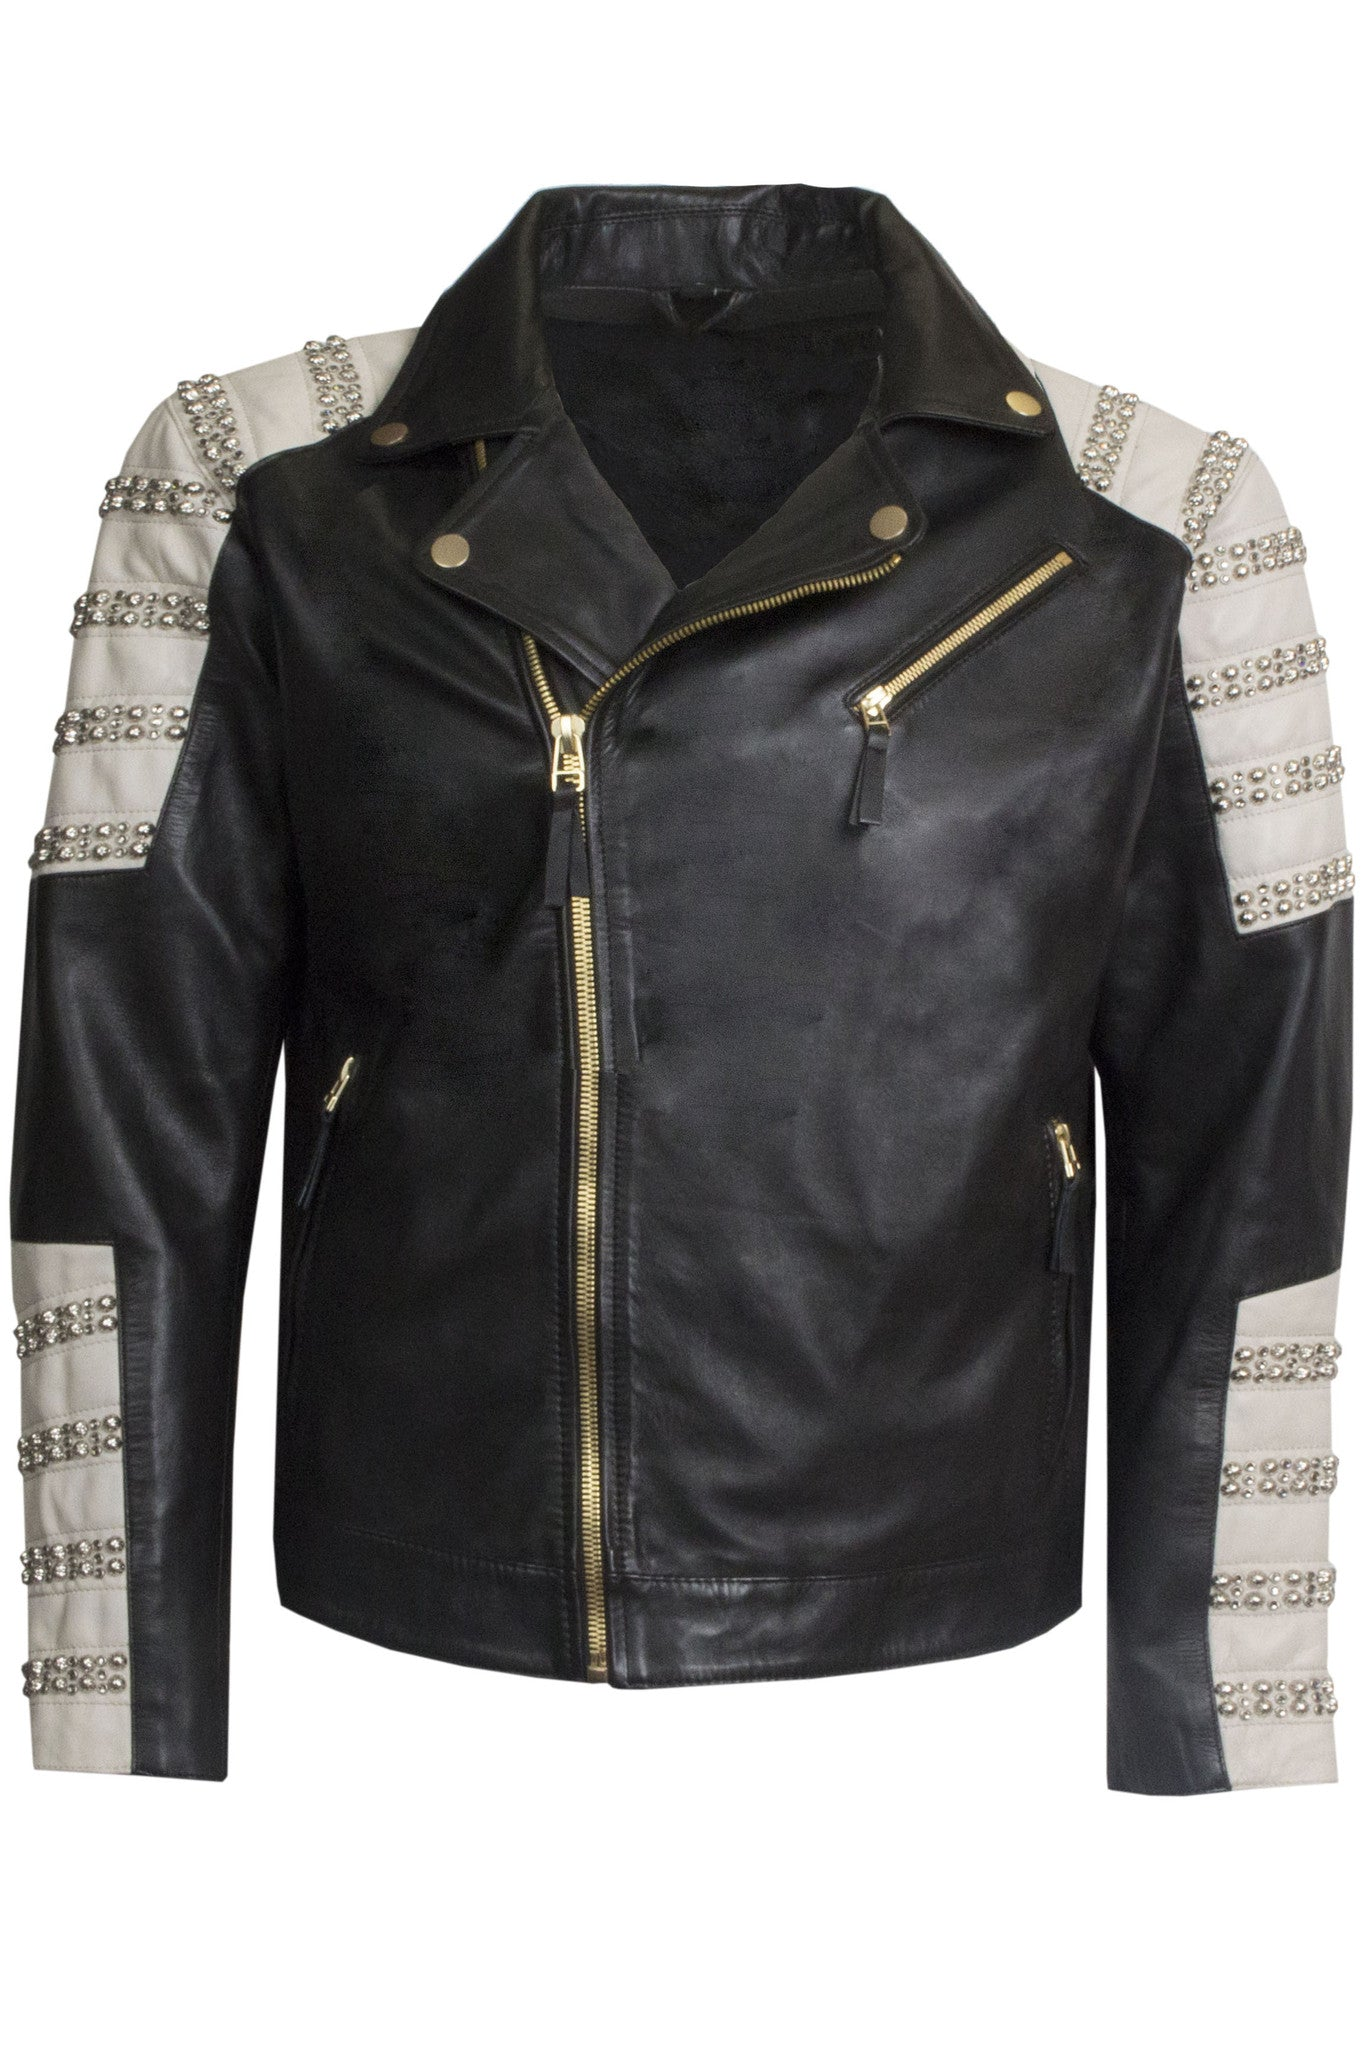 Robin's Jean - Men's Black and White Tribeca Parachute Leather Jacket